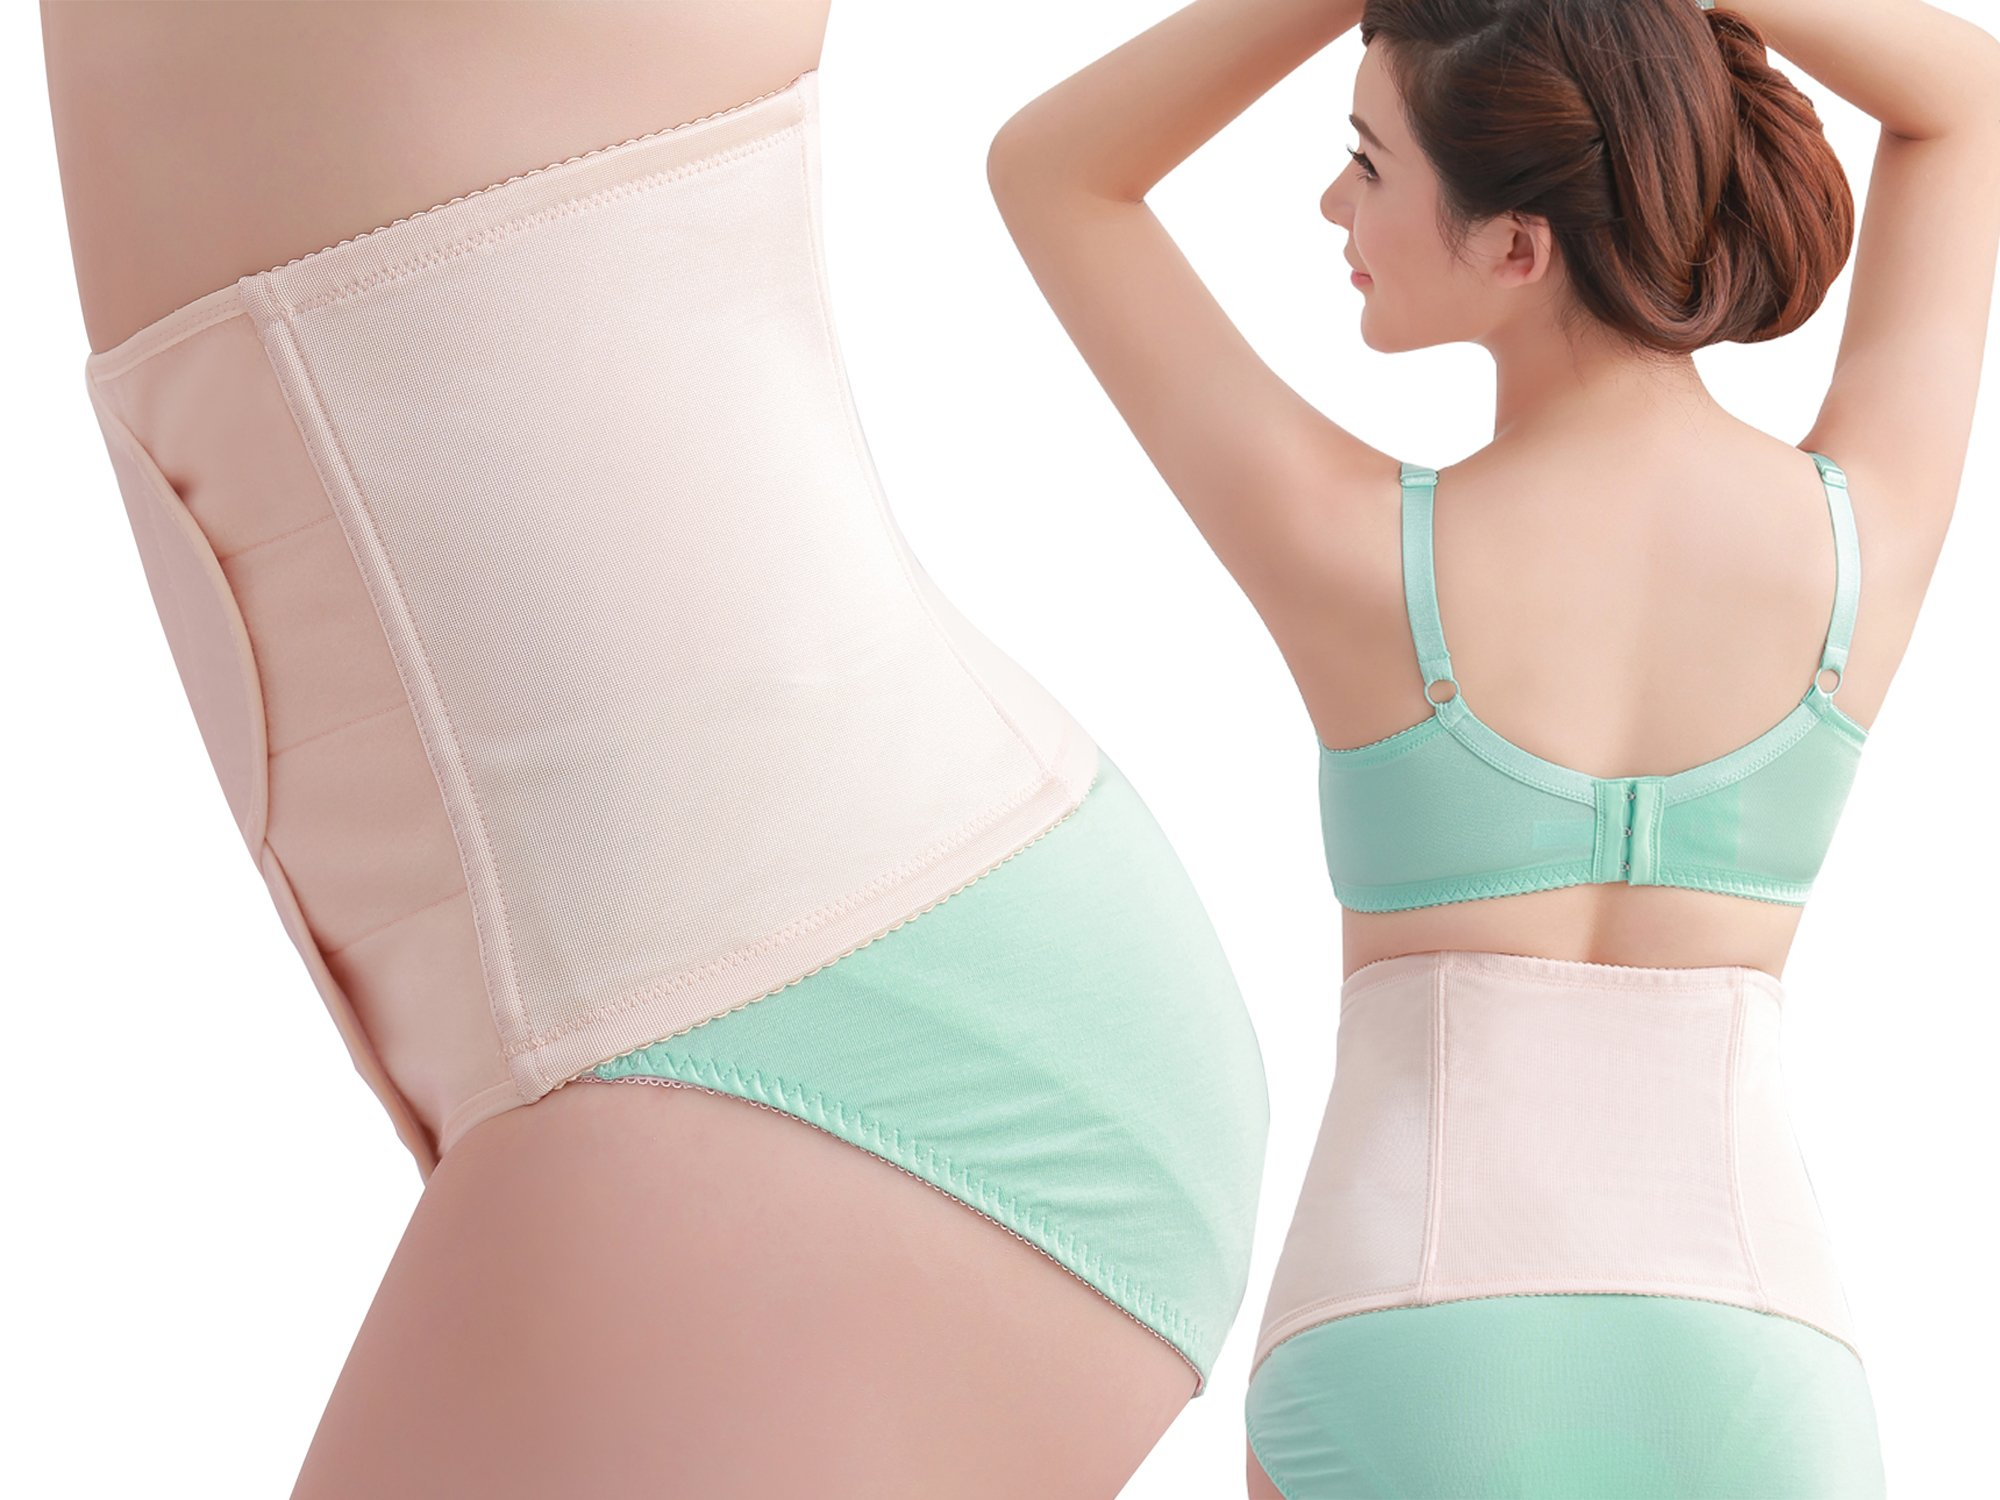 Picotee Women Postpartum Belly Wrap Band Maternity Recovery Support Waist Belt (Nude, L)